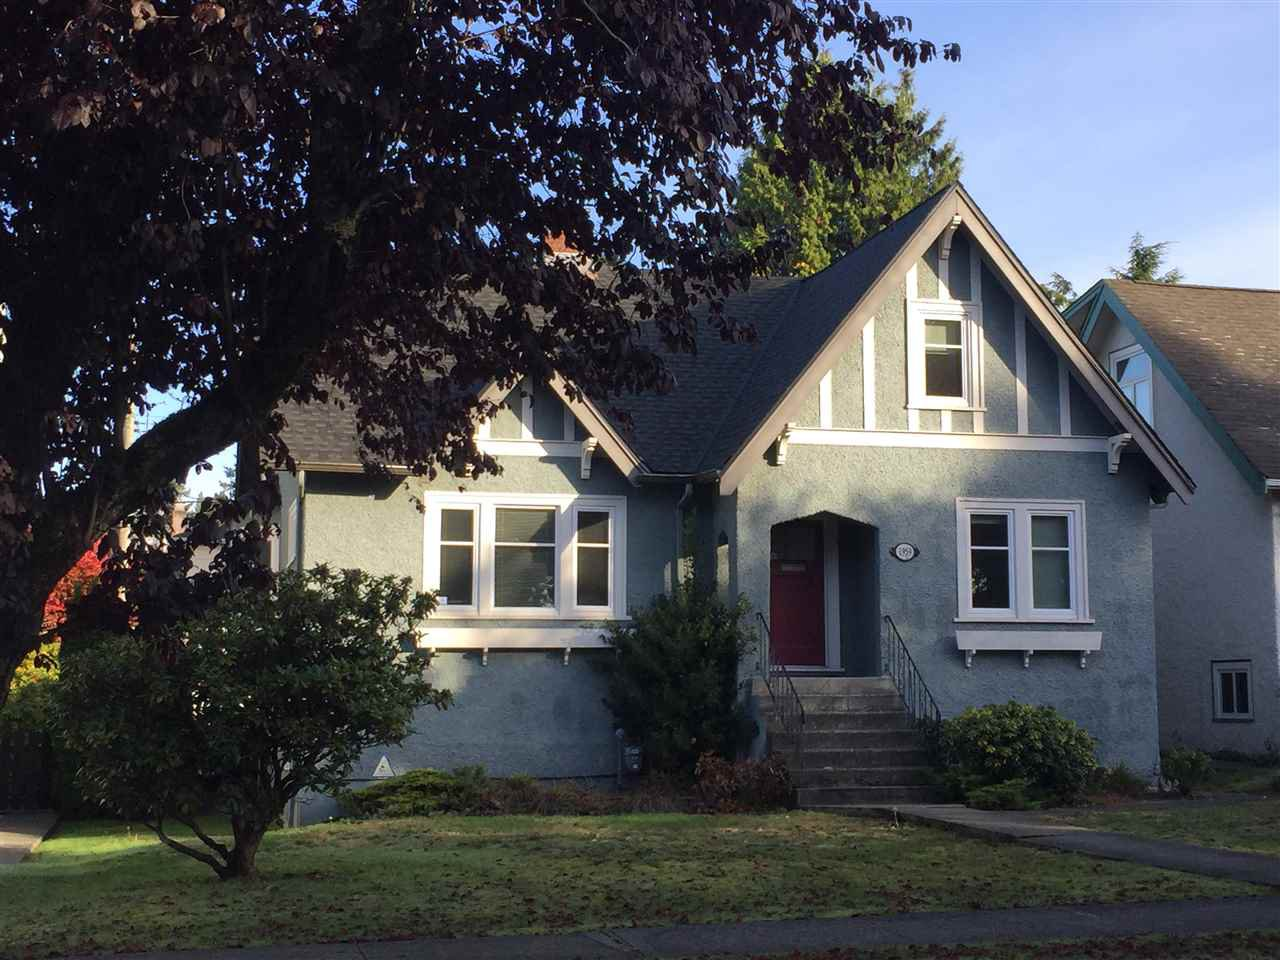 Main Photo: 1959 W 43RD Avenue in Vancouver: Kerrisdale House for sale (Vancouver West)  : MLS®# R2415345